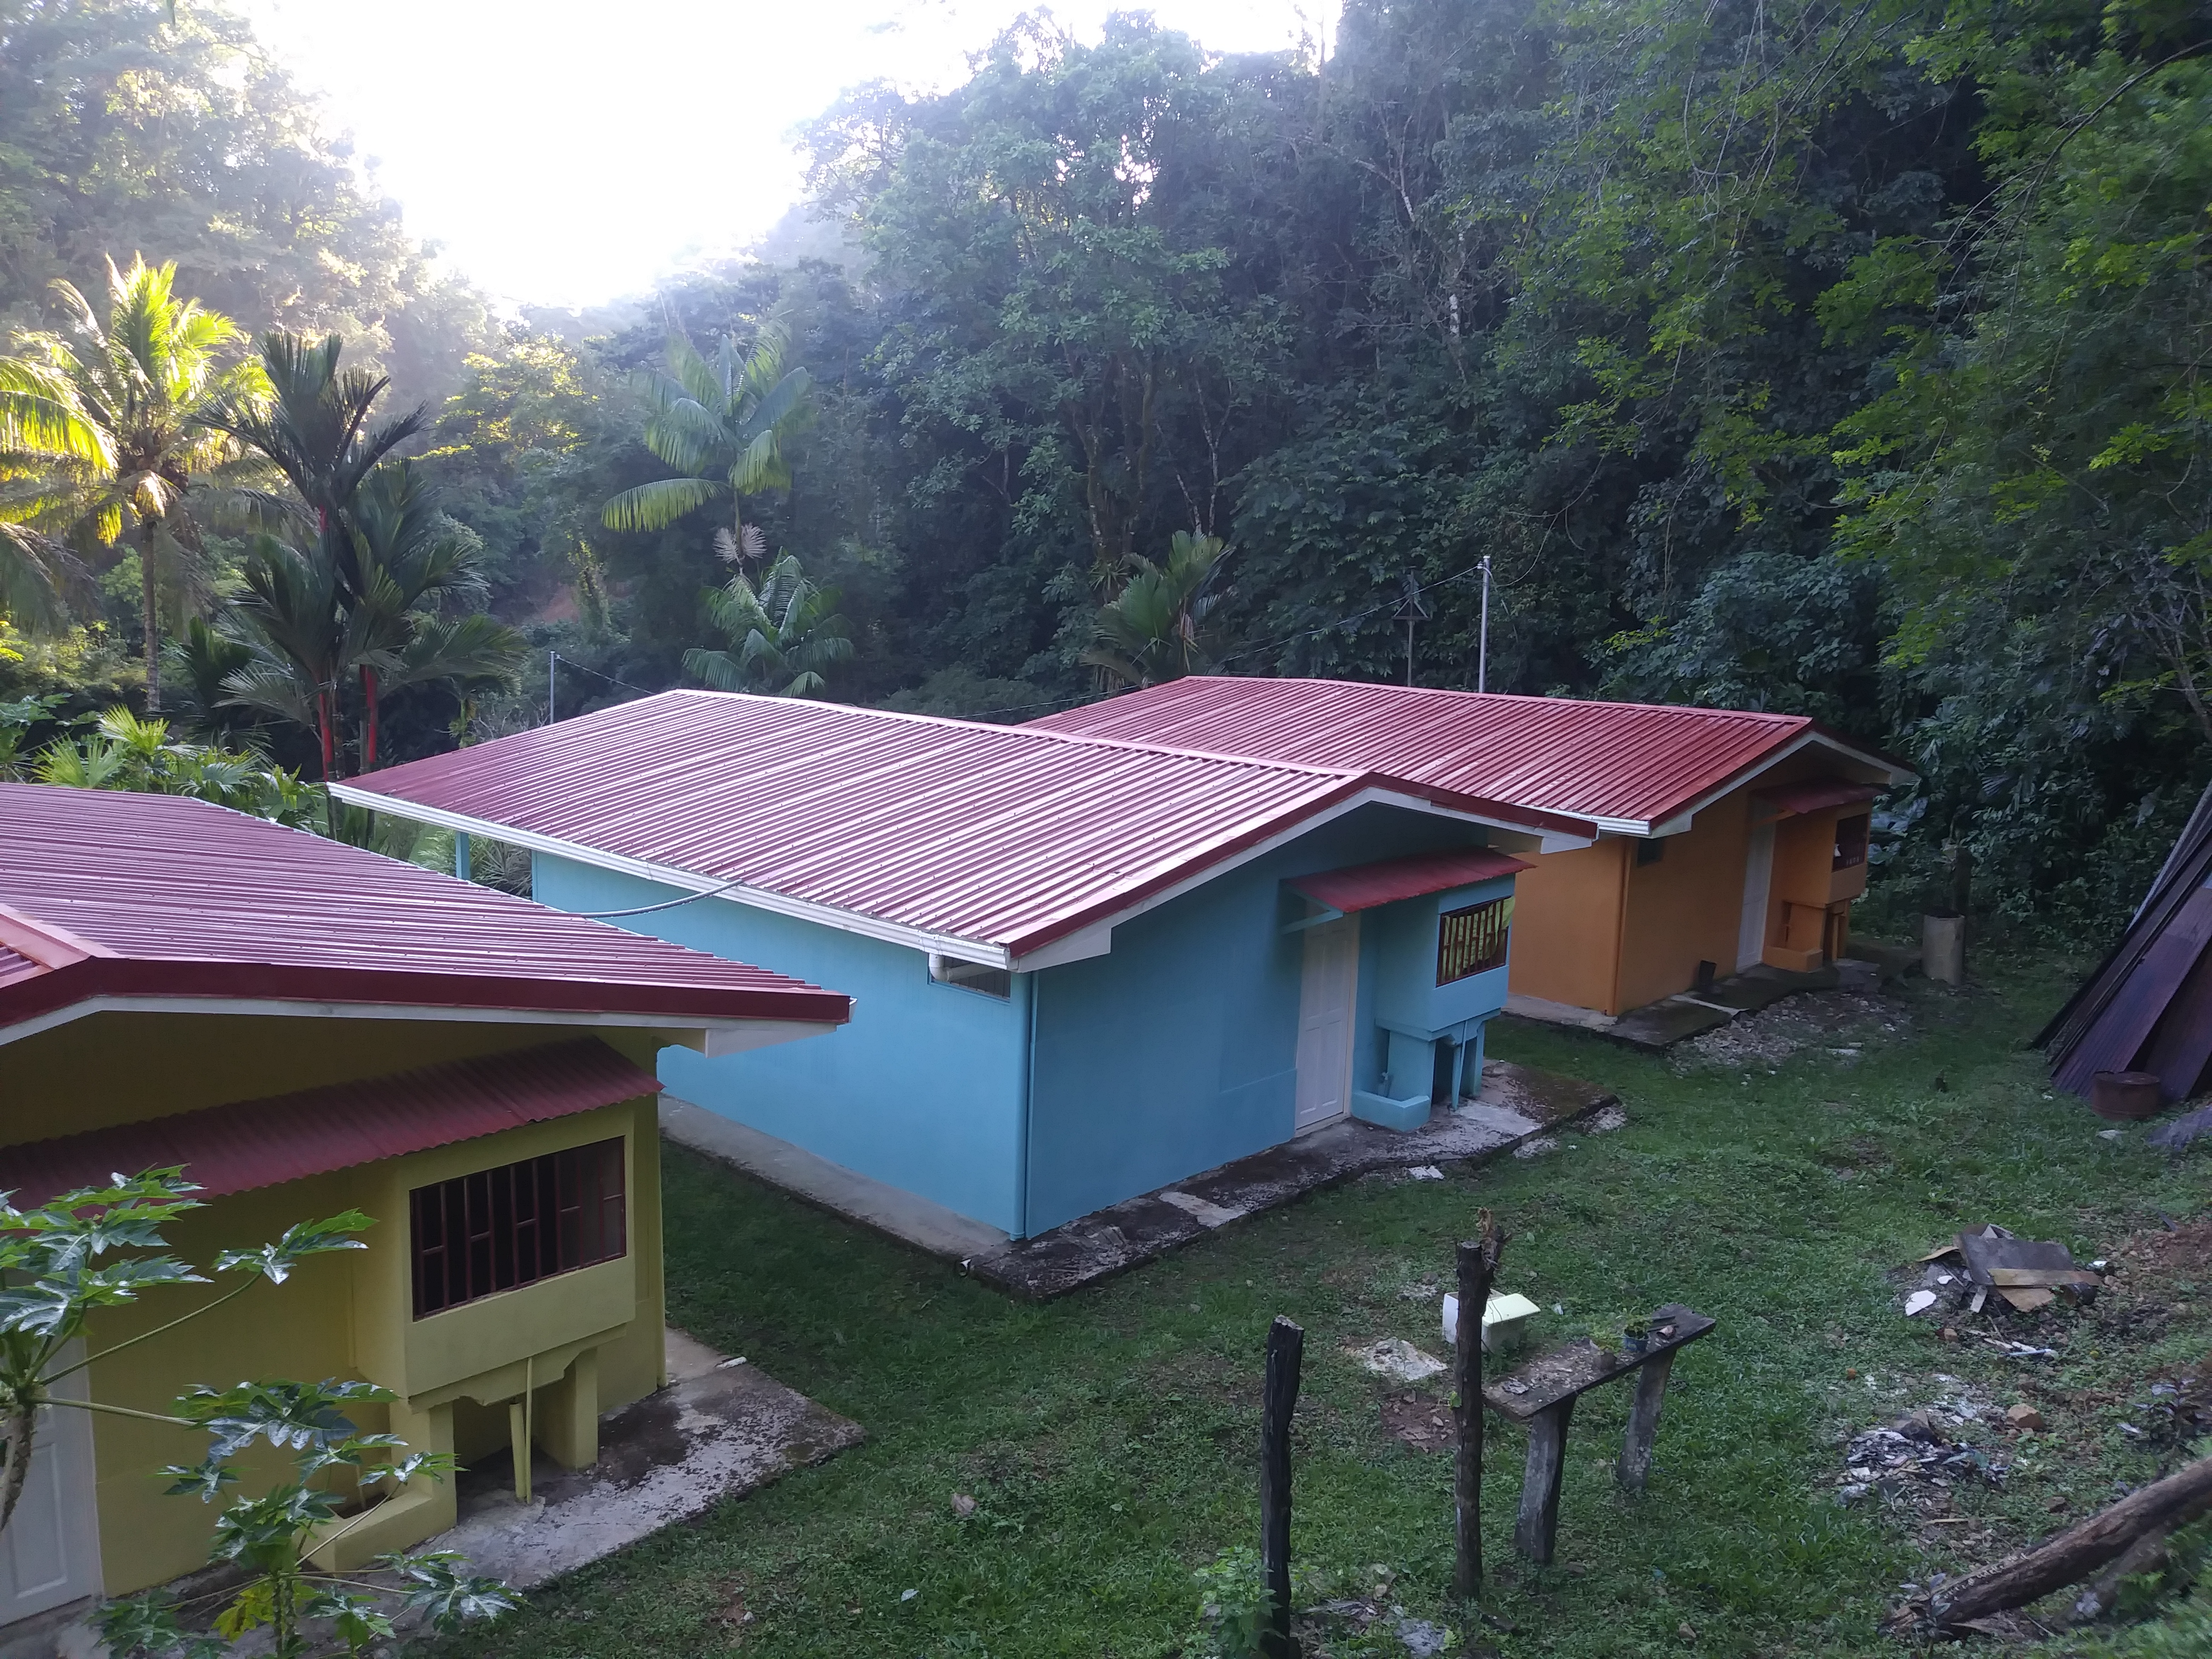 24.5 acres of jungle paradise with a river in Tierras Morenas